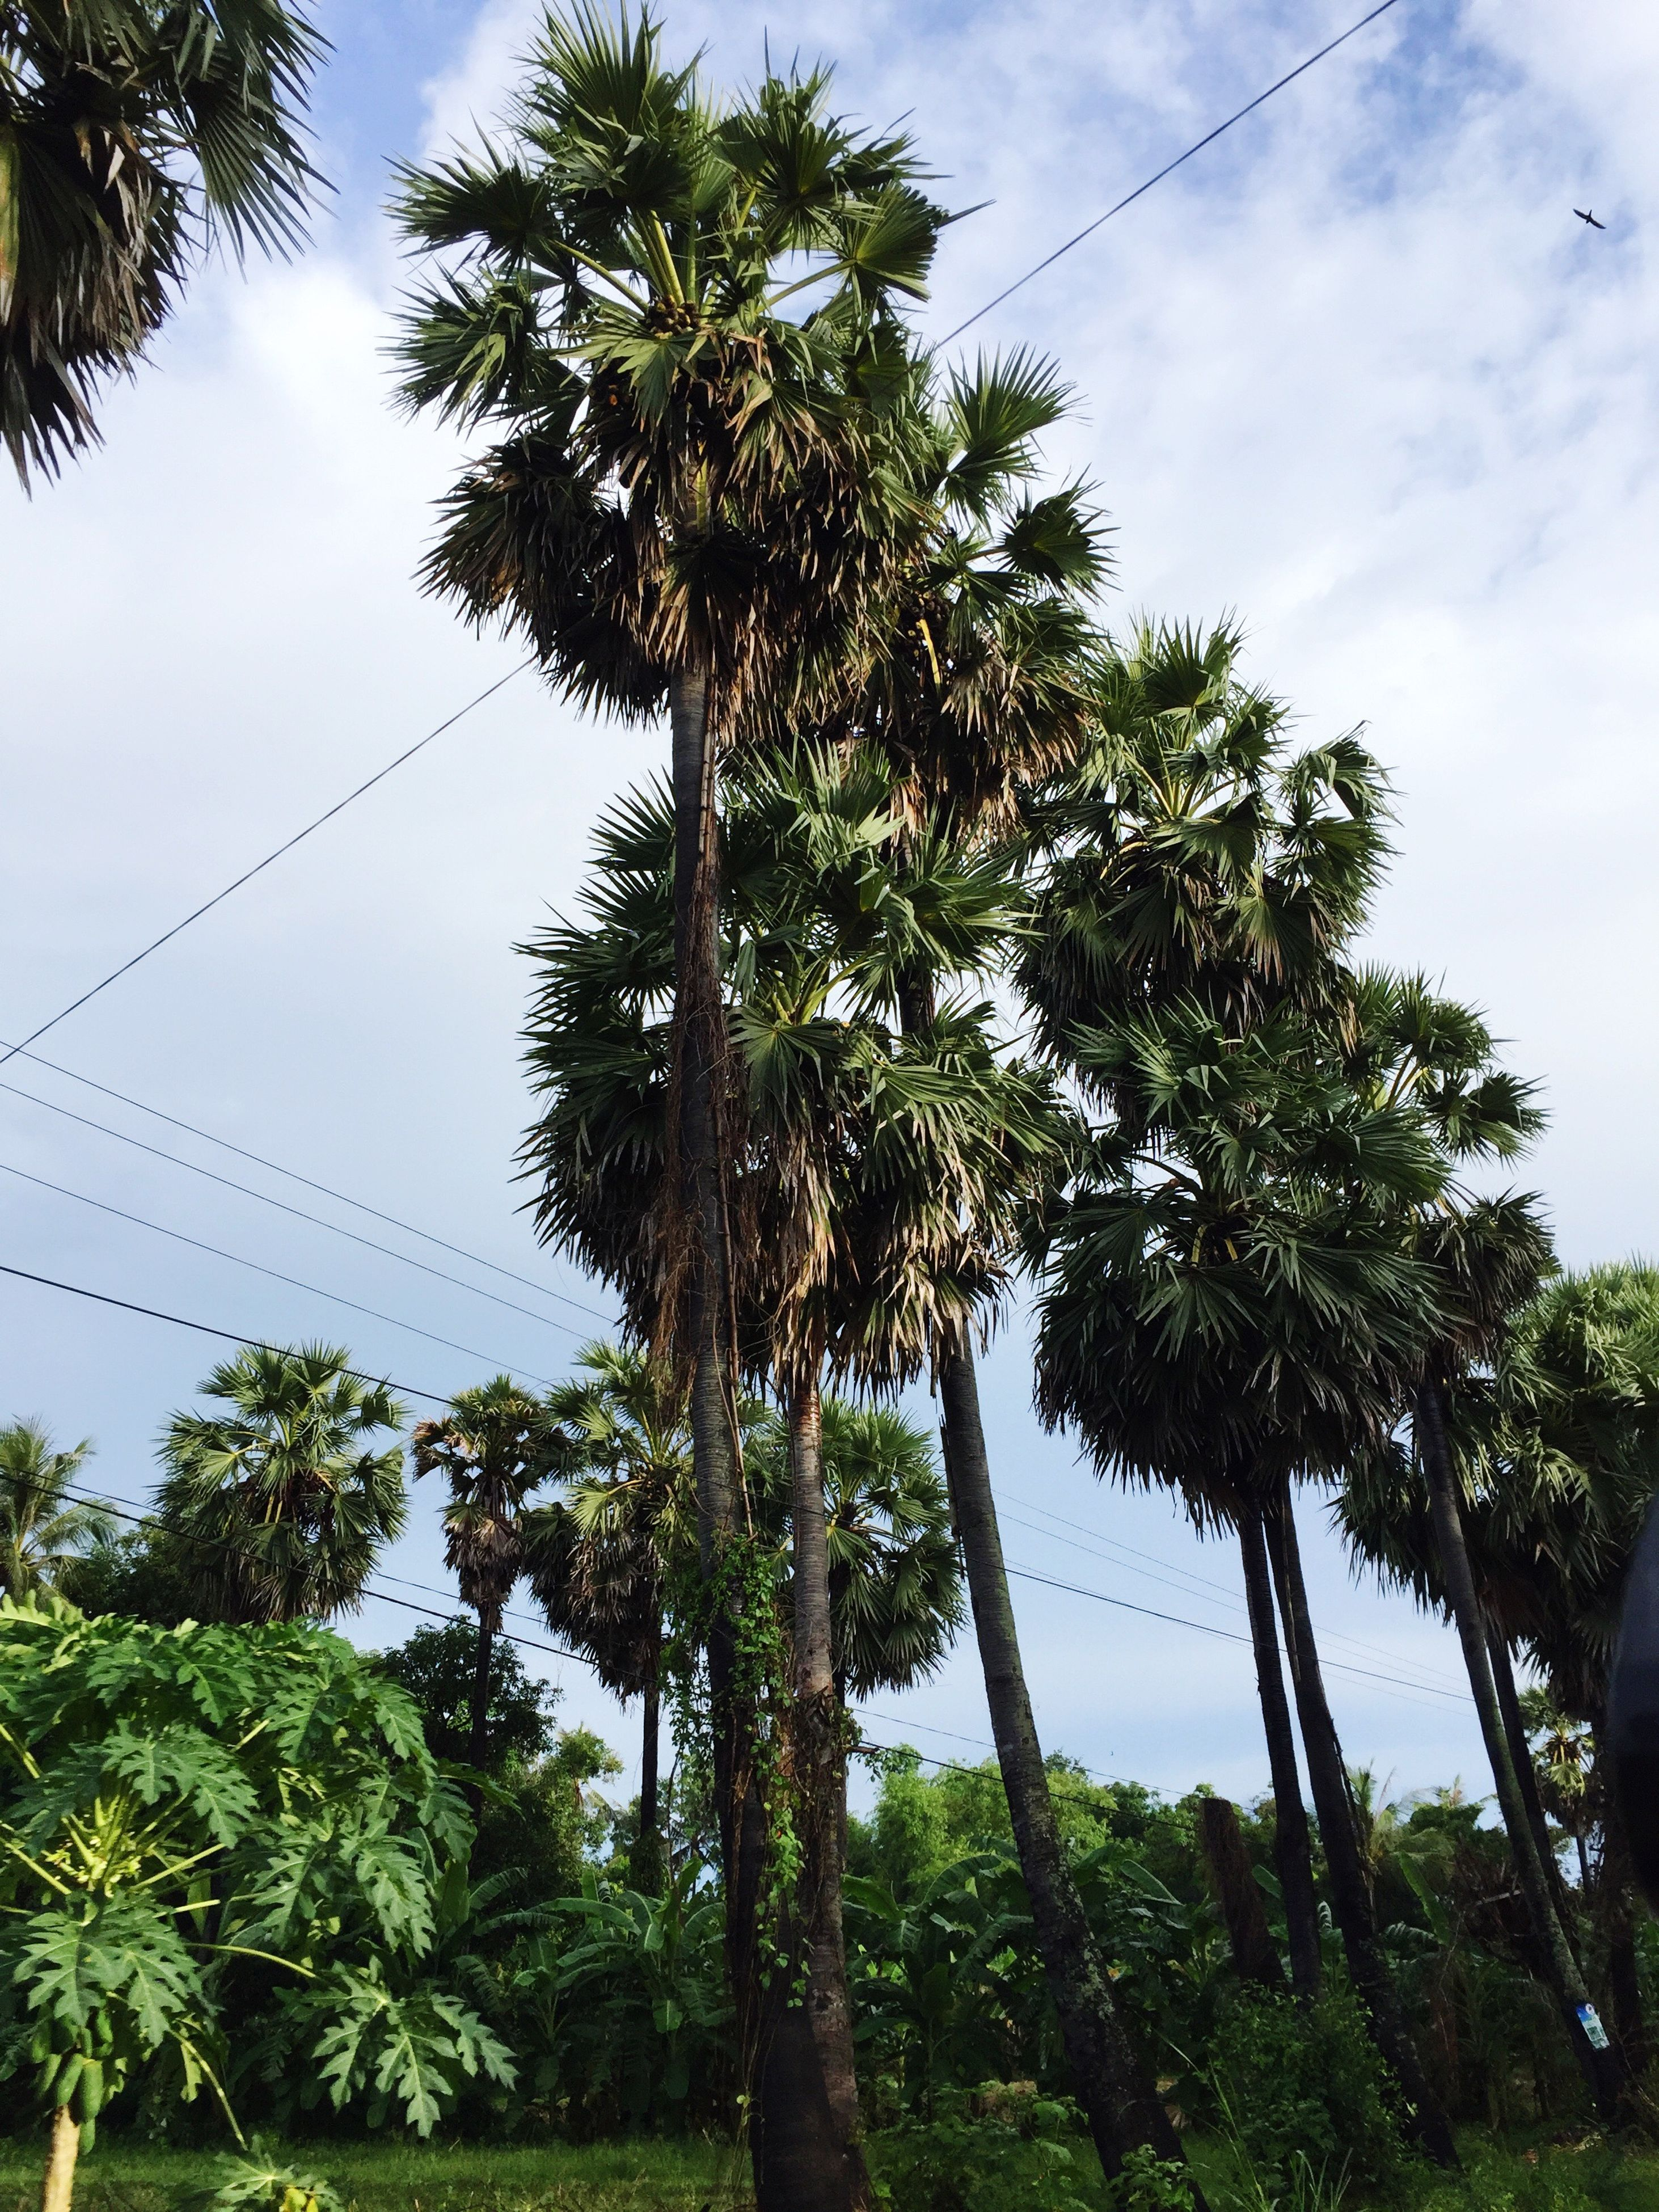 tree, palm tree, growth, low angle view, sky, nature, day, no people, outdoors, green color, cloud - sky, plant, beauty in nature, branch